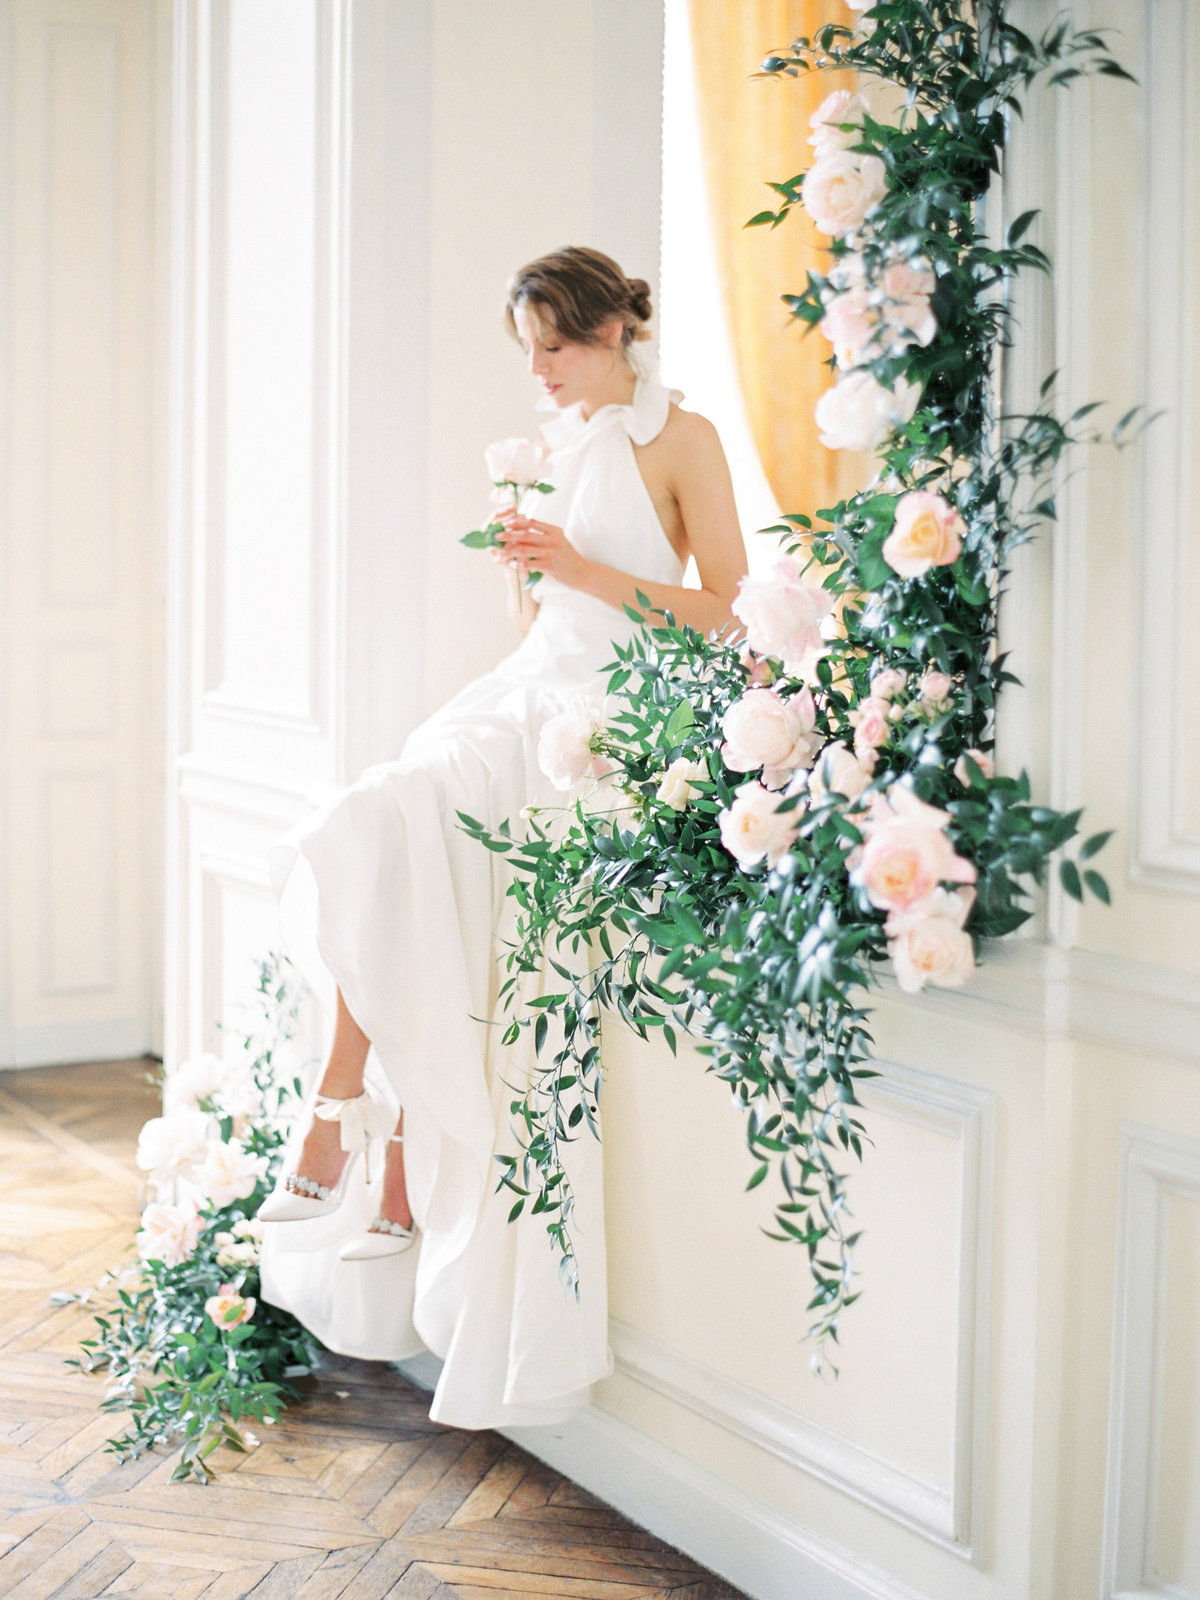 Luxurious french chateau wedding amelia soegijono0025